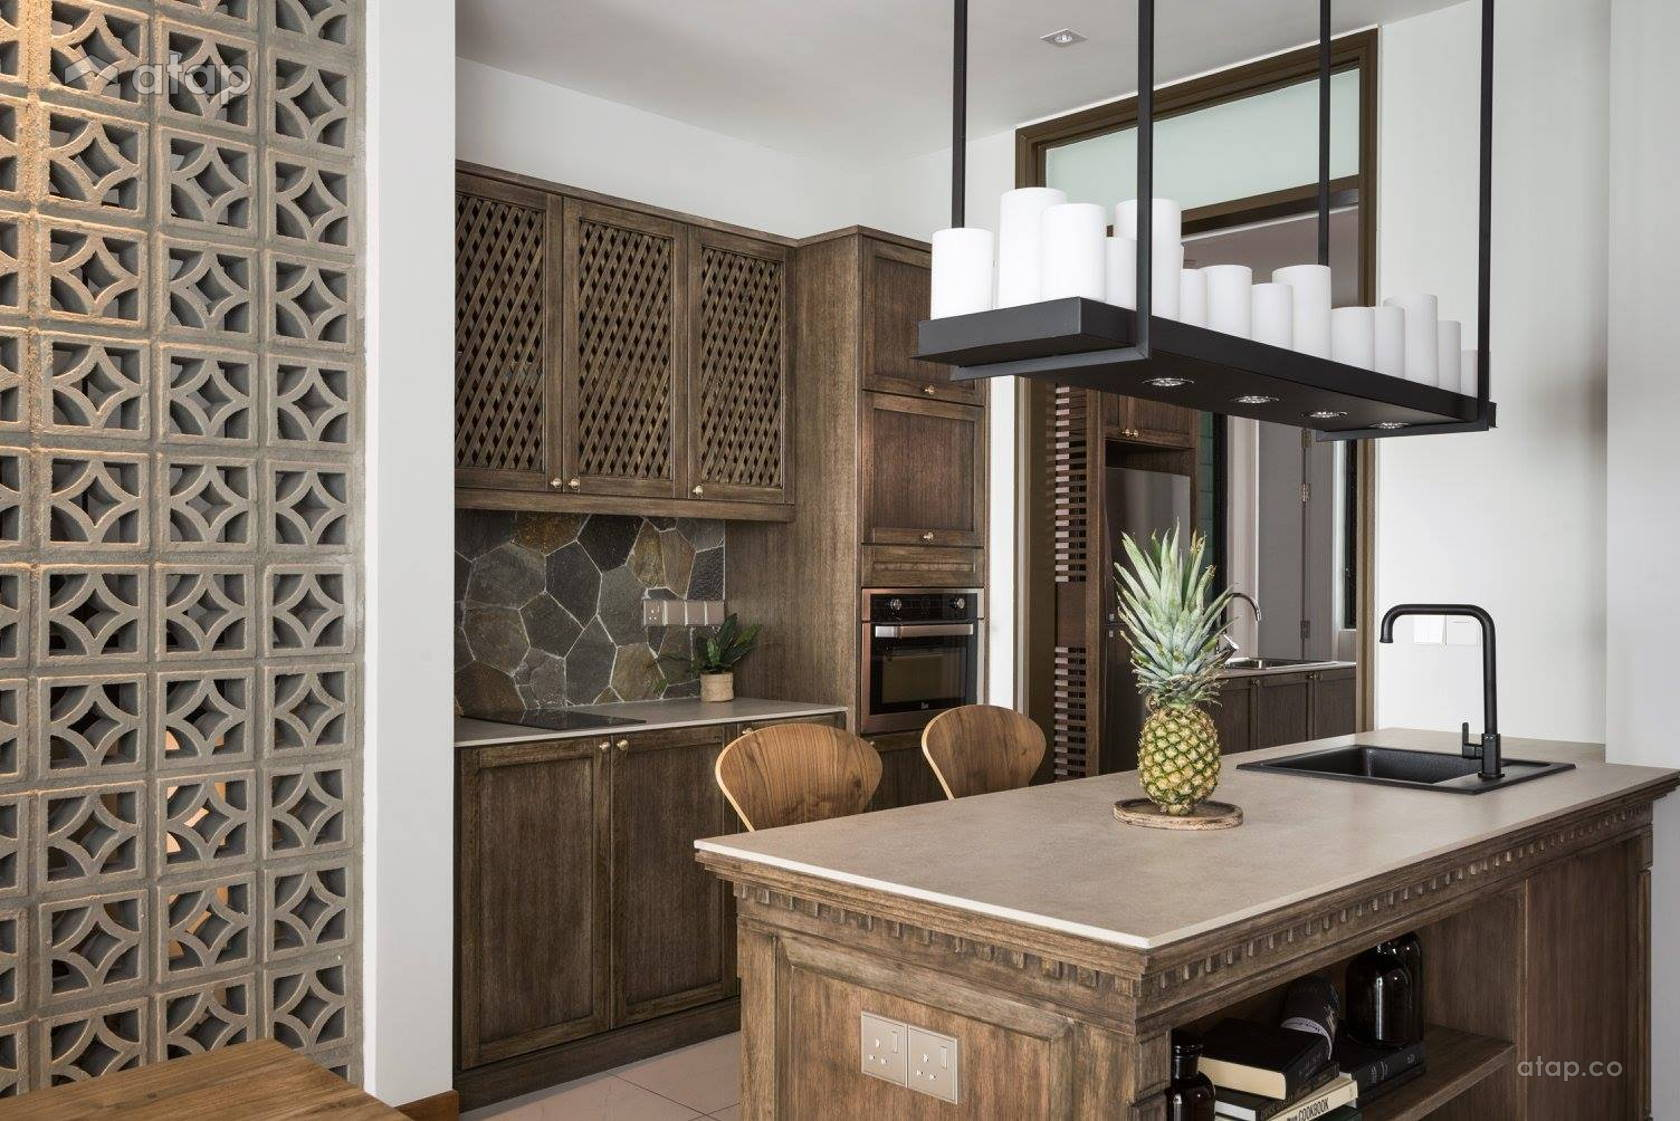 galley-kitchen-with-rustic-theme